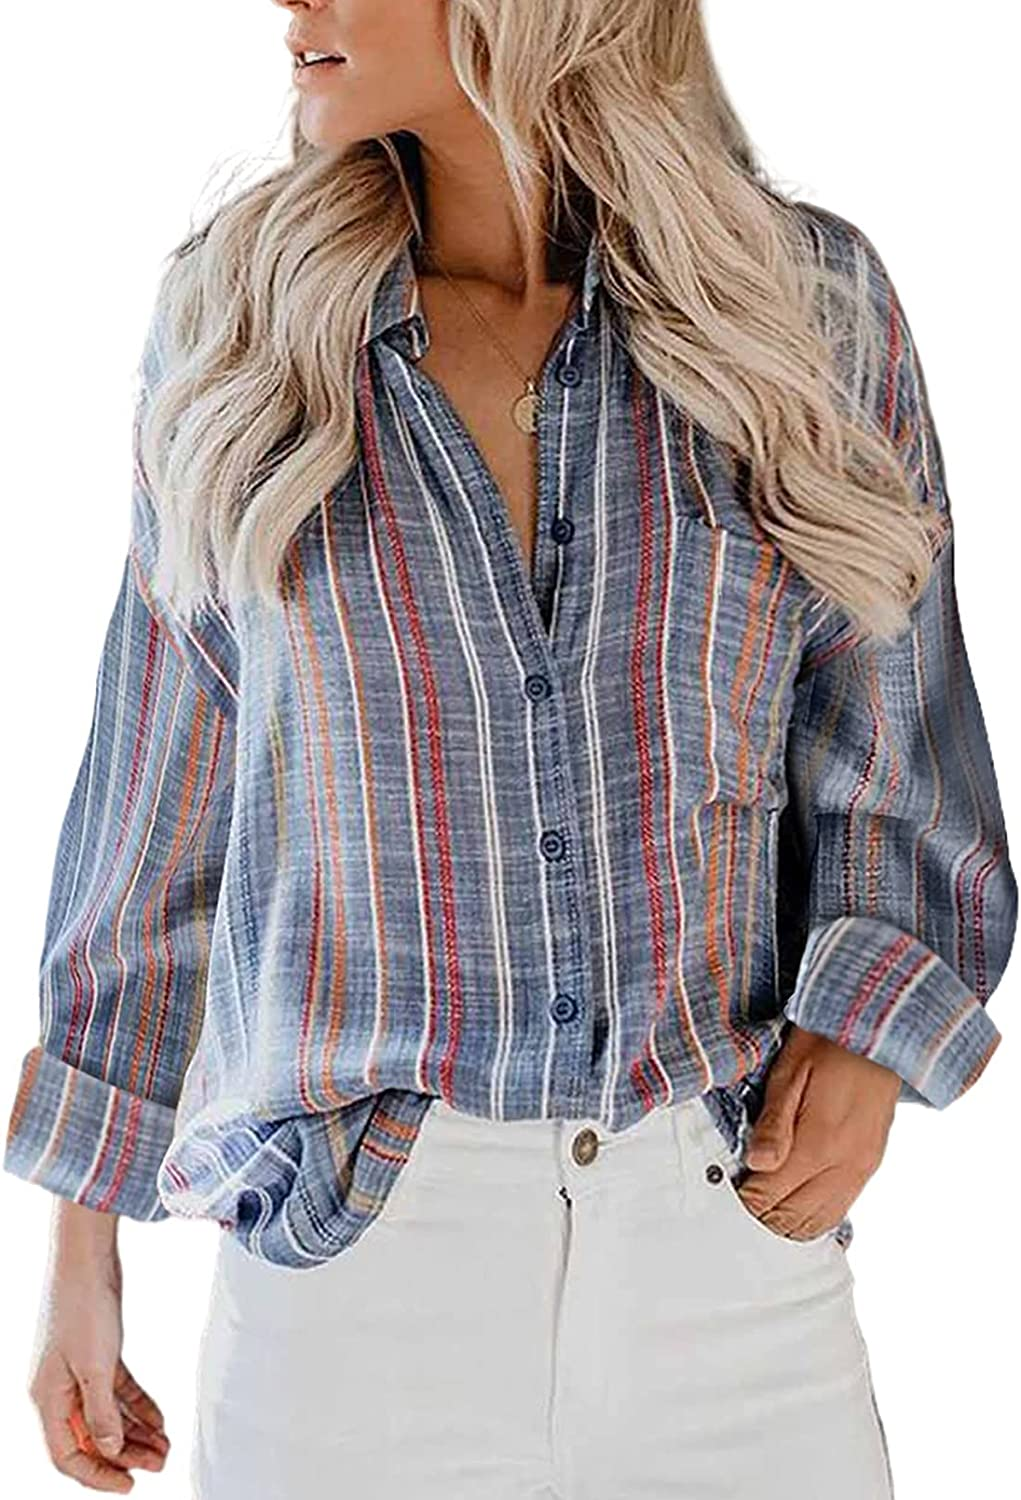 BLENCOT Women Button Down Blouses V Neck Striped Shirts Roll up Long Sleeve Casual Tops S-2XL